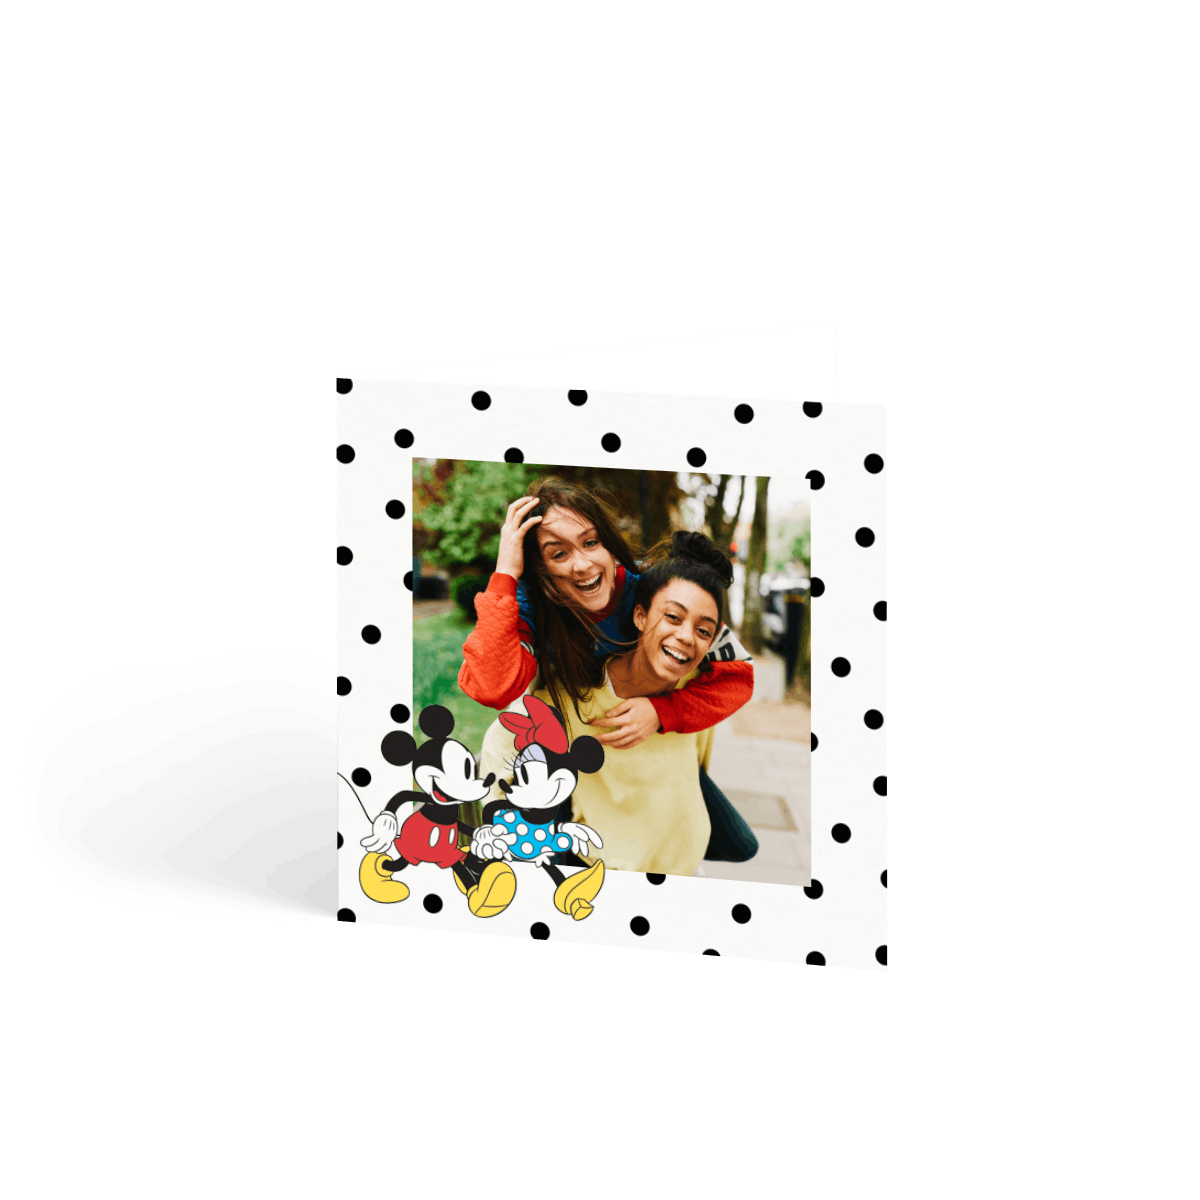 Https%3a%2f%2fwww.papier.com%2fproduct image%2f36262%2f16%2fmickey minnie mouse 9107 front 1531227671.png?ixlib=rb 1.1